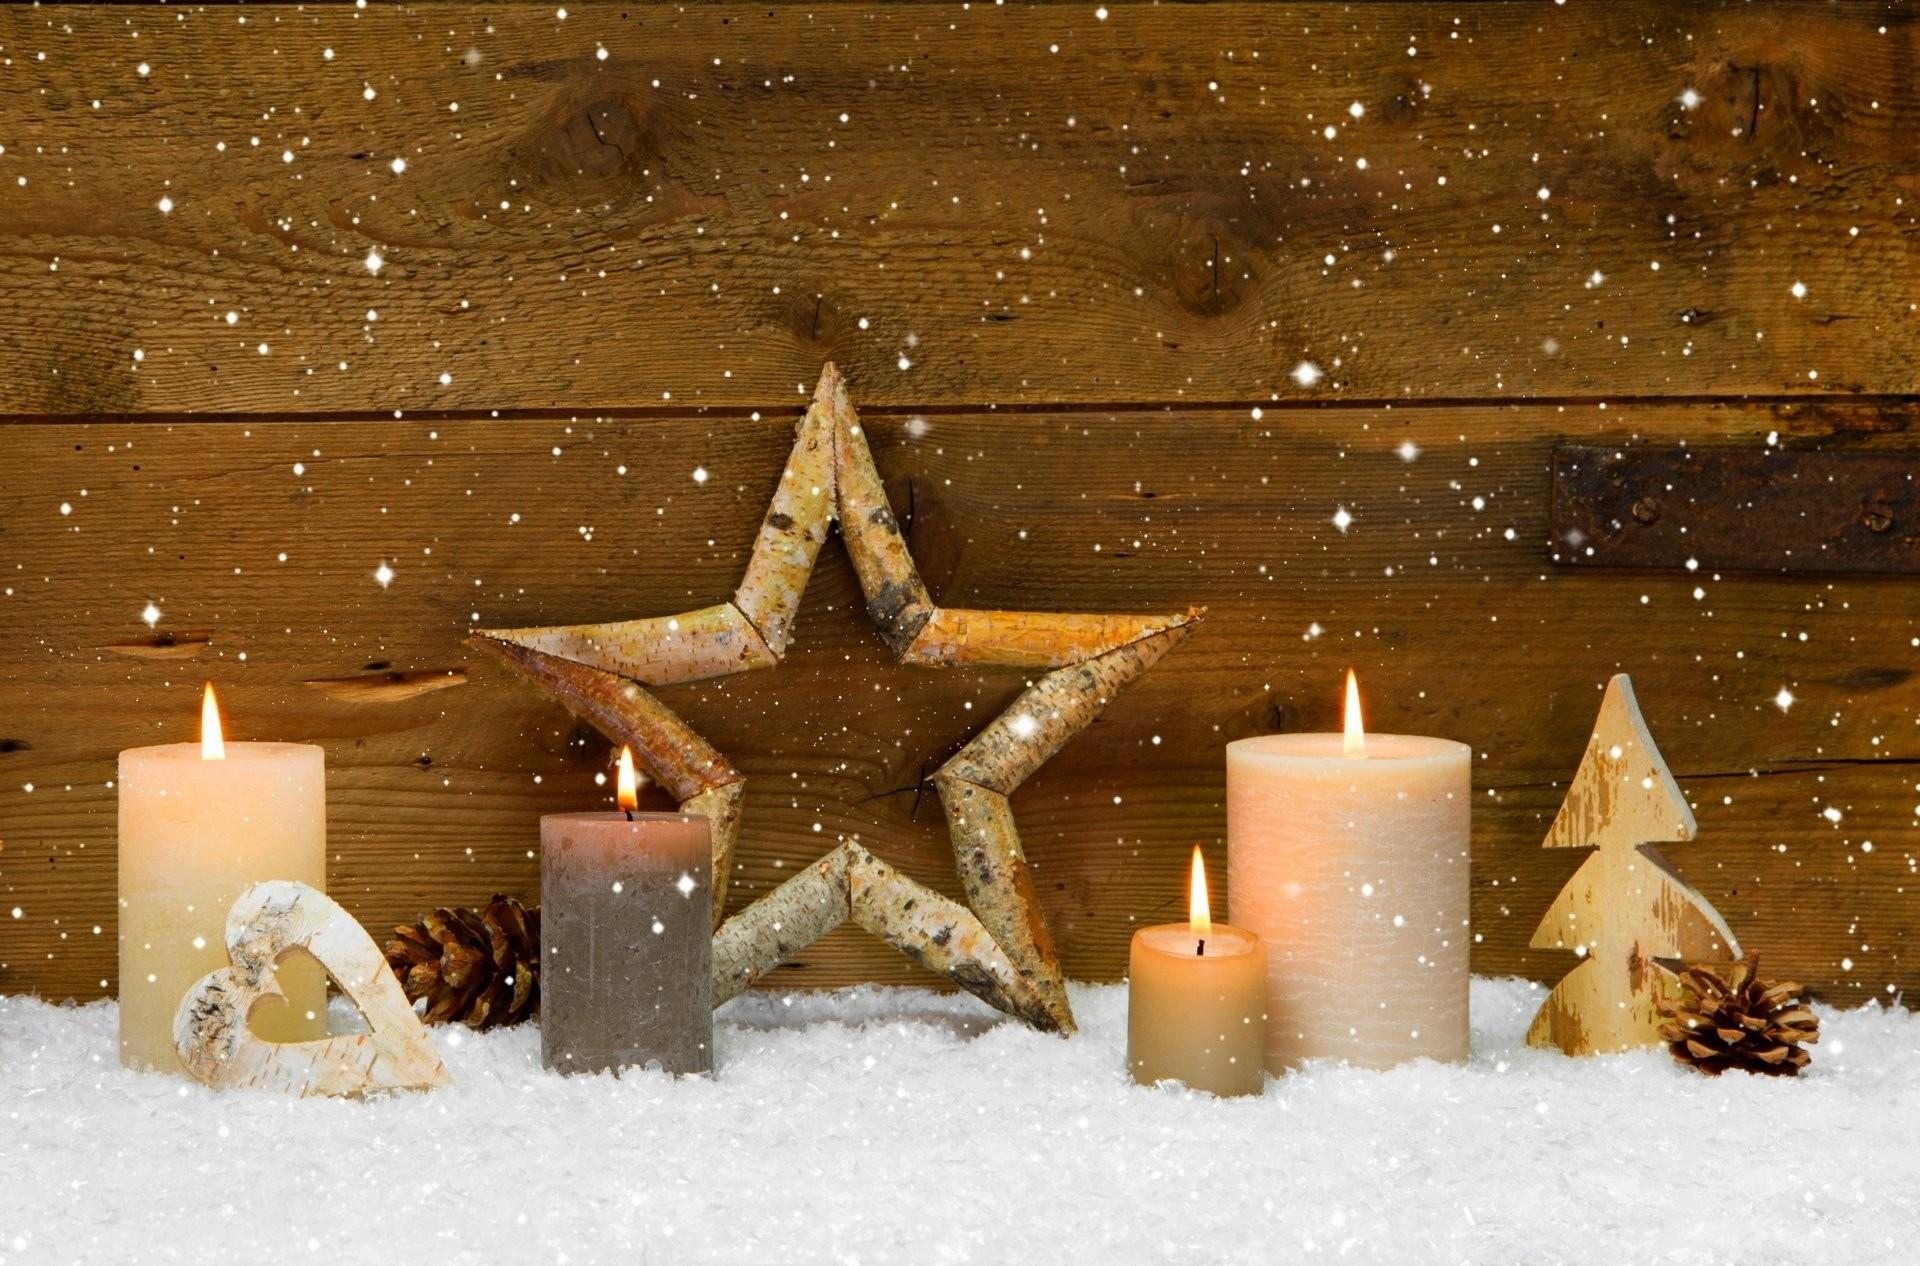 Winter Candles Star Cones Holiday Heart Merry Christmas